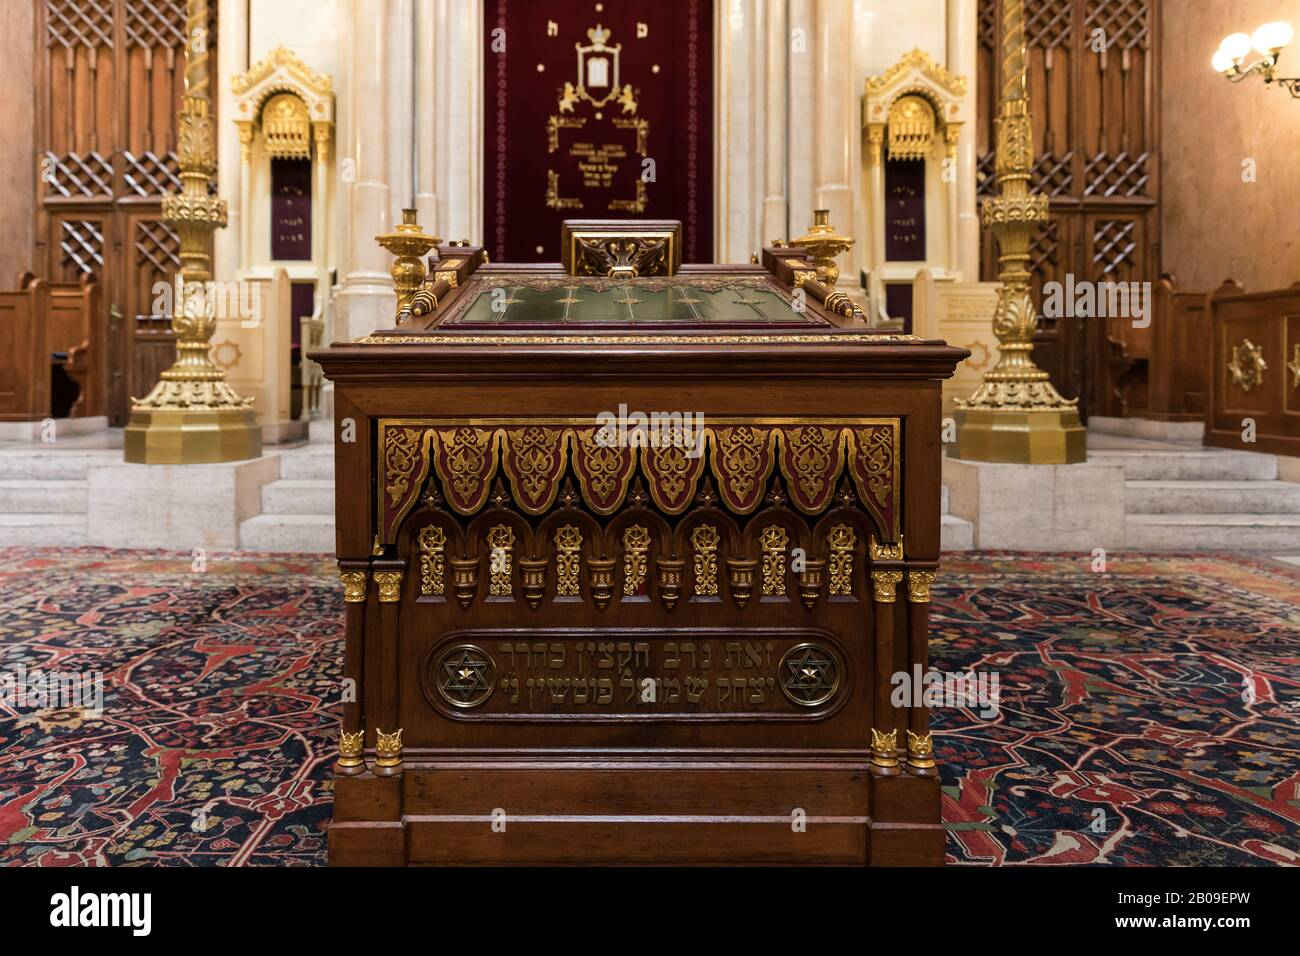 Budapest, Hungary - 25 April 2019: View of the interior of the synagogue in Budapest, Hungary Stock Photo